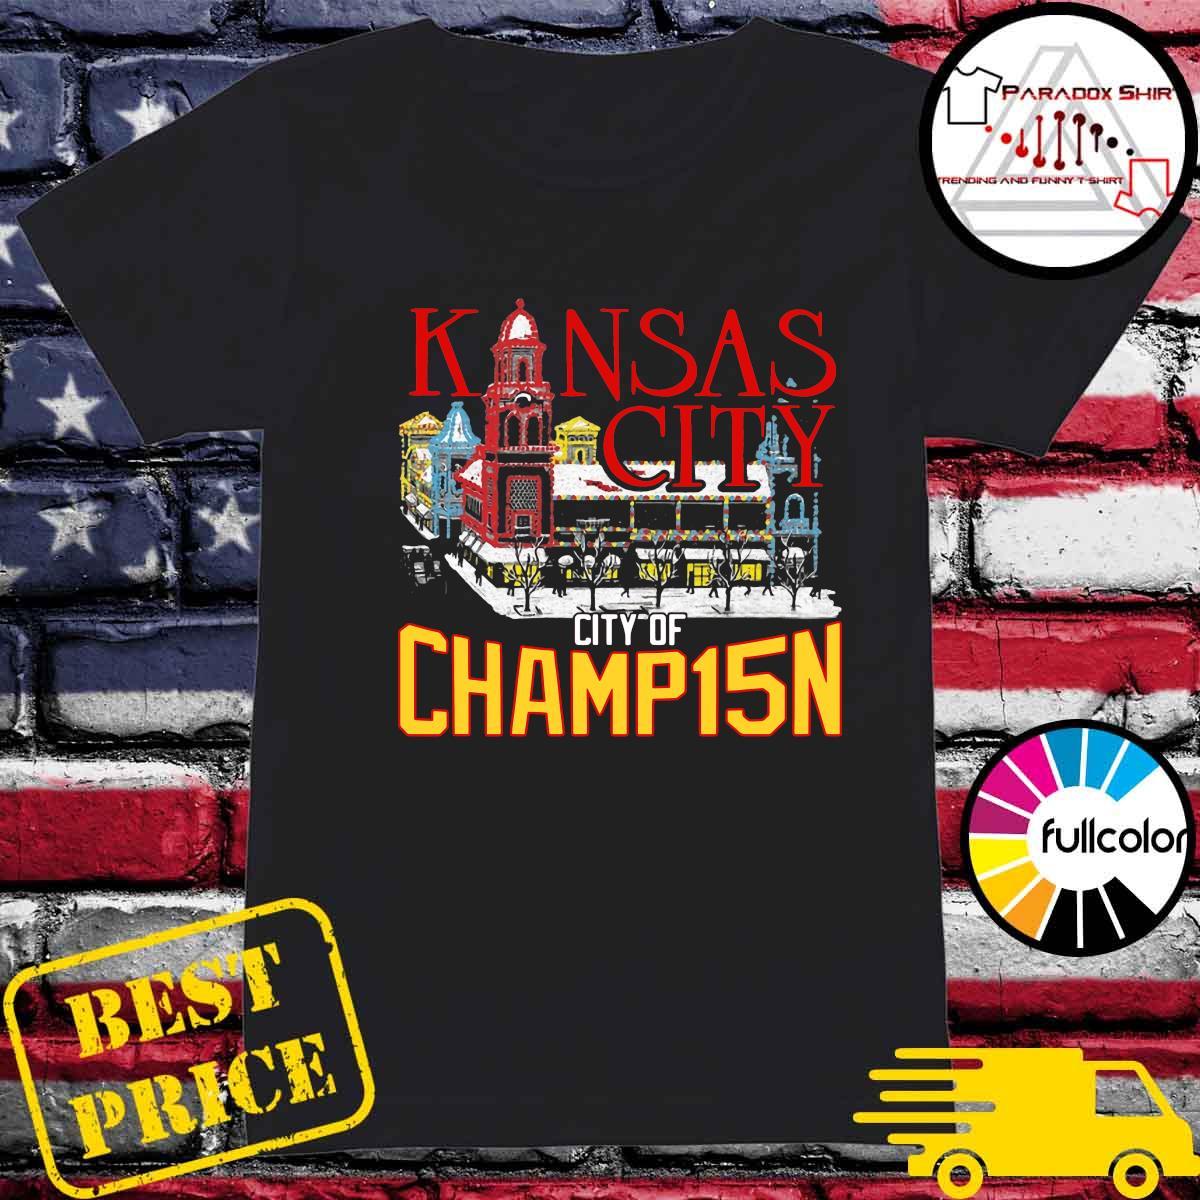 Kansas City City Of Champ15n Shirt Ladies